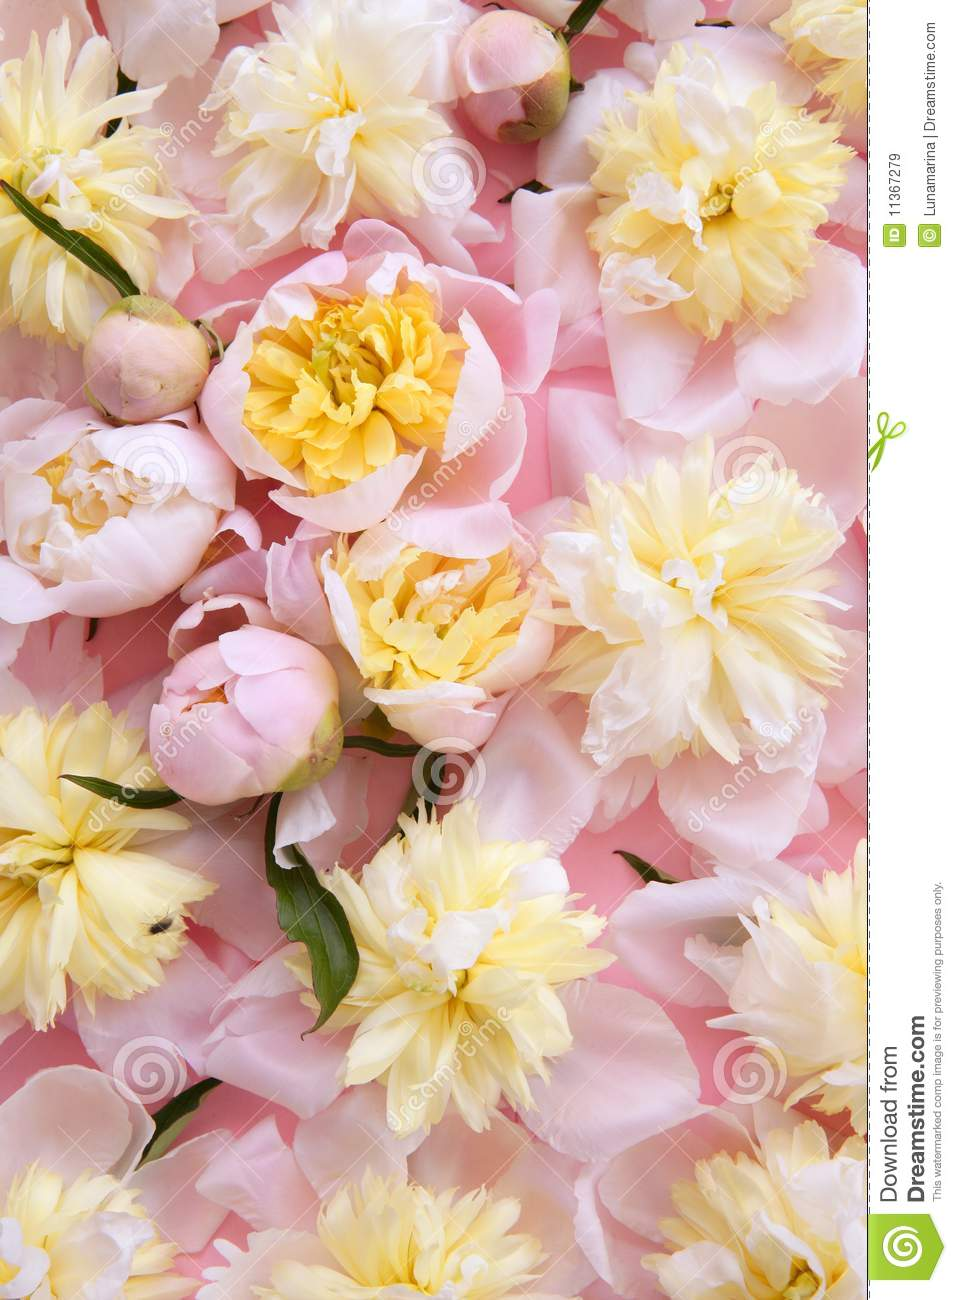 Colorful Pink And Yellow Flowers Background Stock Image Image Of